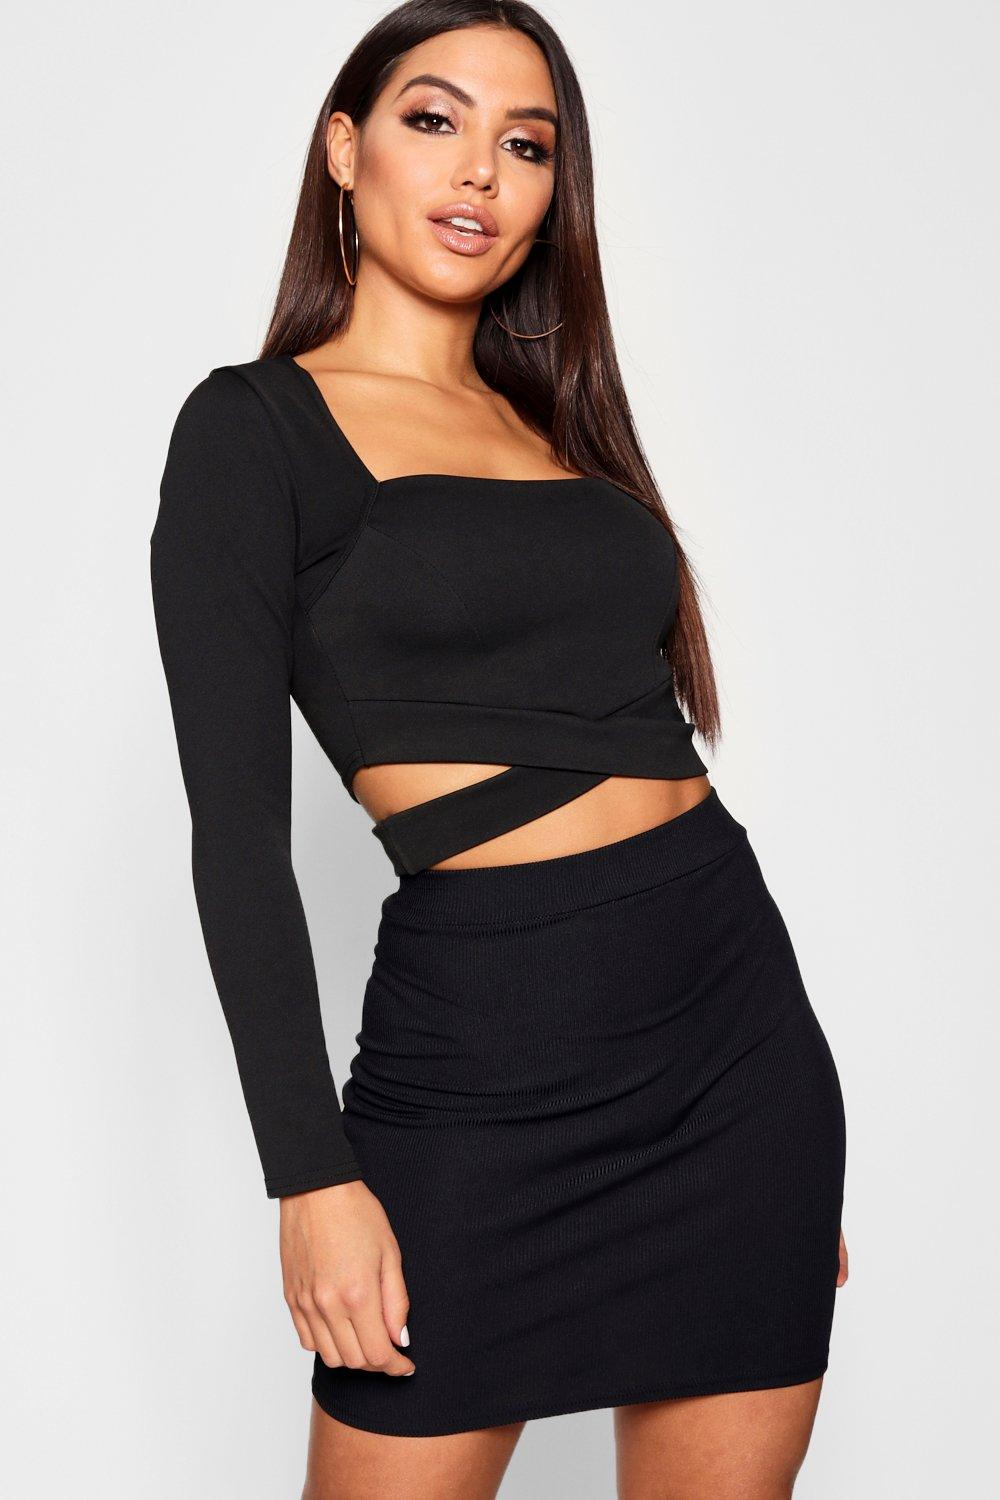 ba6757e9bb0d7d Womens Black Square Neck Long Sleeve Cut Out Crop